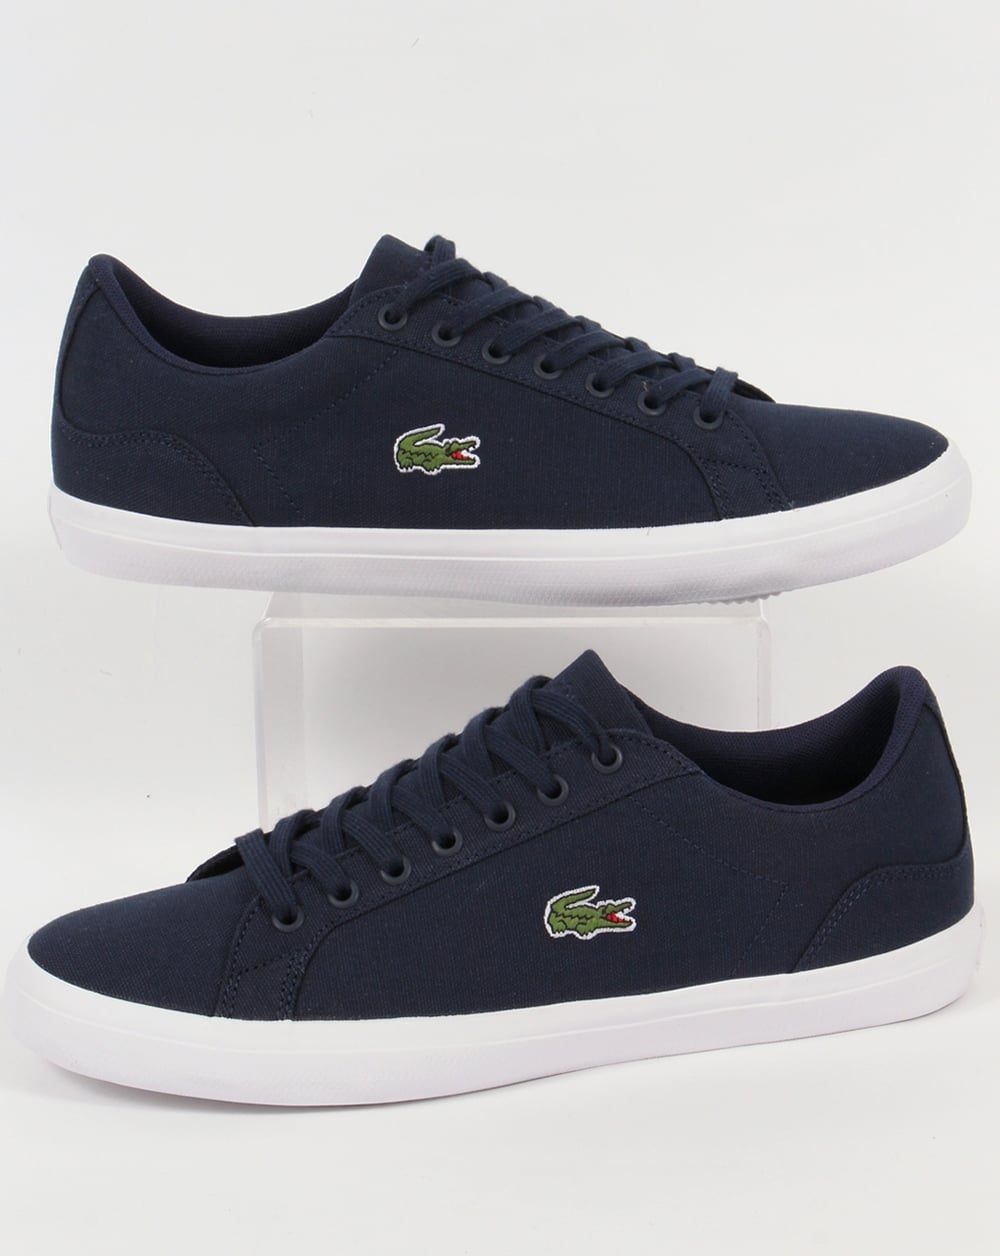 154894af9 Lacoste Lacoste Lerond Canvas Trainers Navy